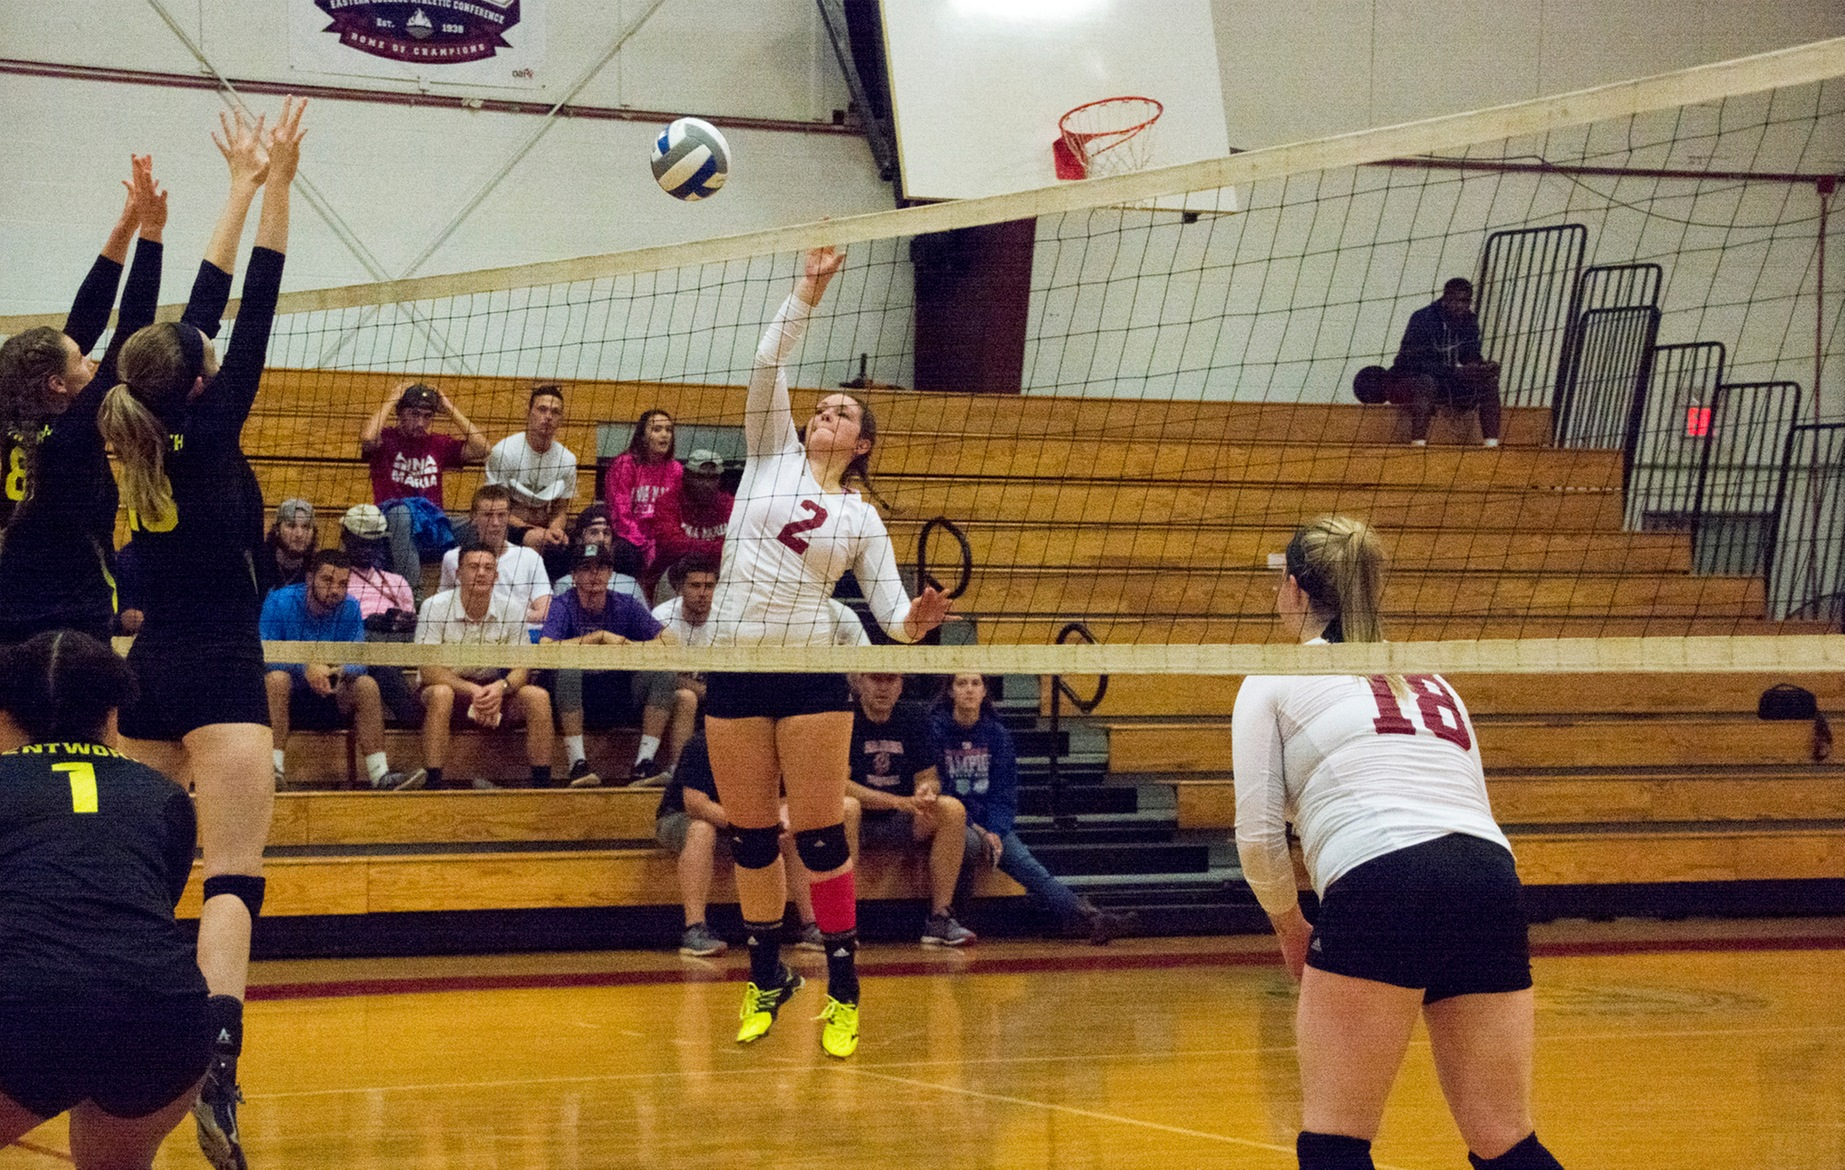 WOMEN'S VOLLEYBALL: Clark too strong for Anna Maria